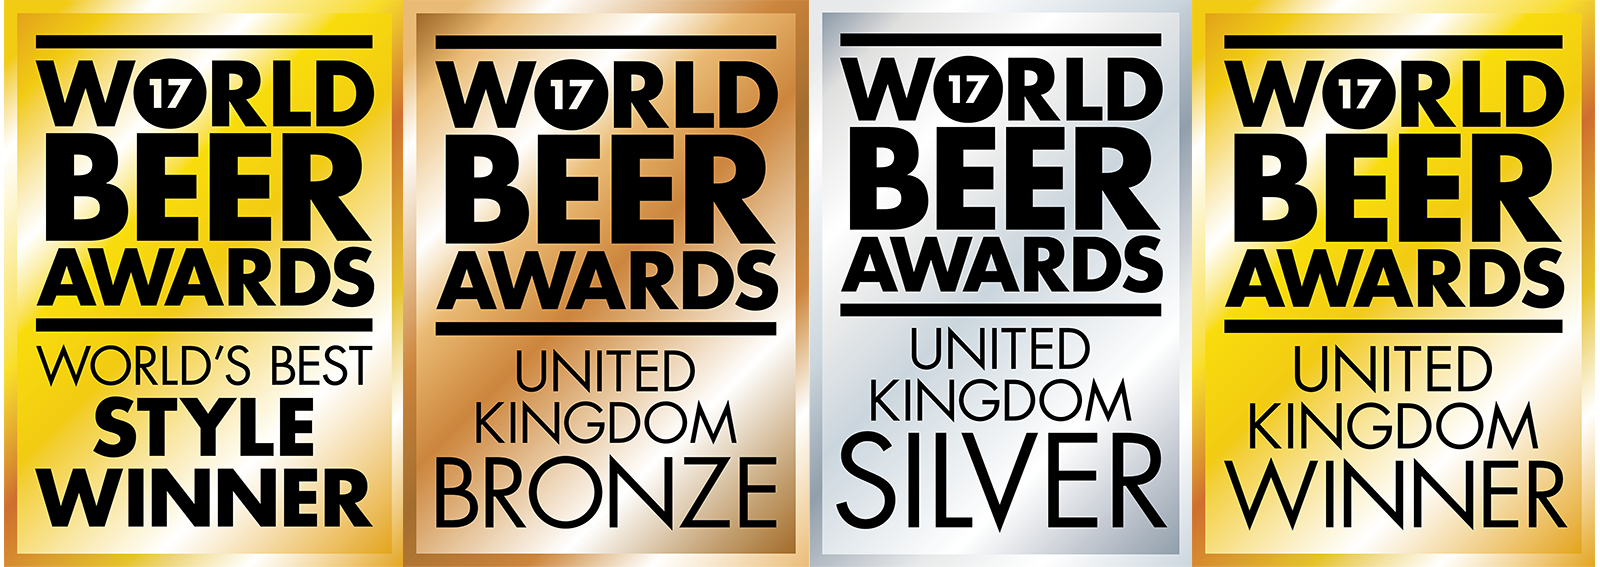 World Beer Awards 2017